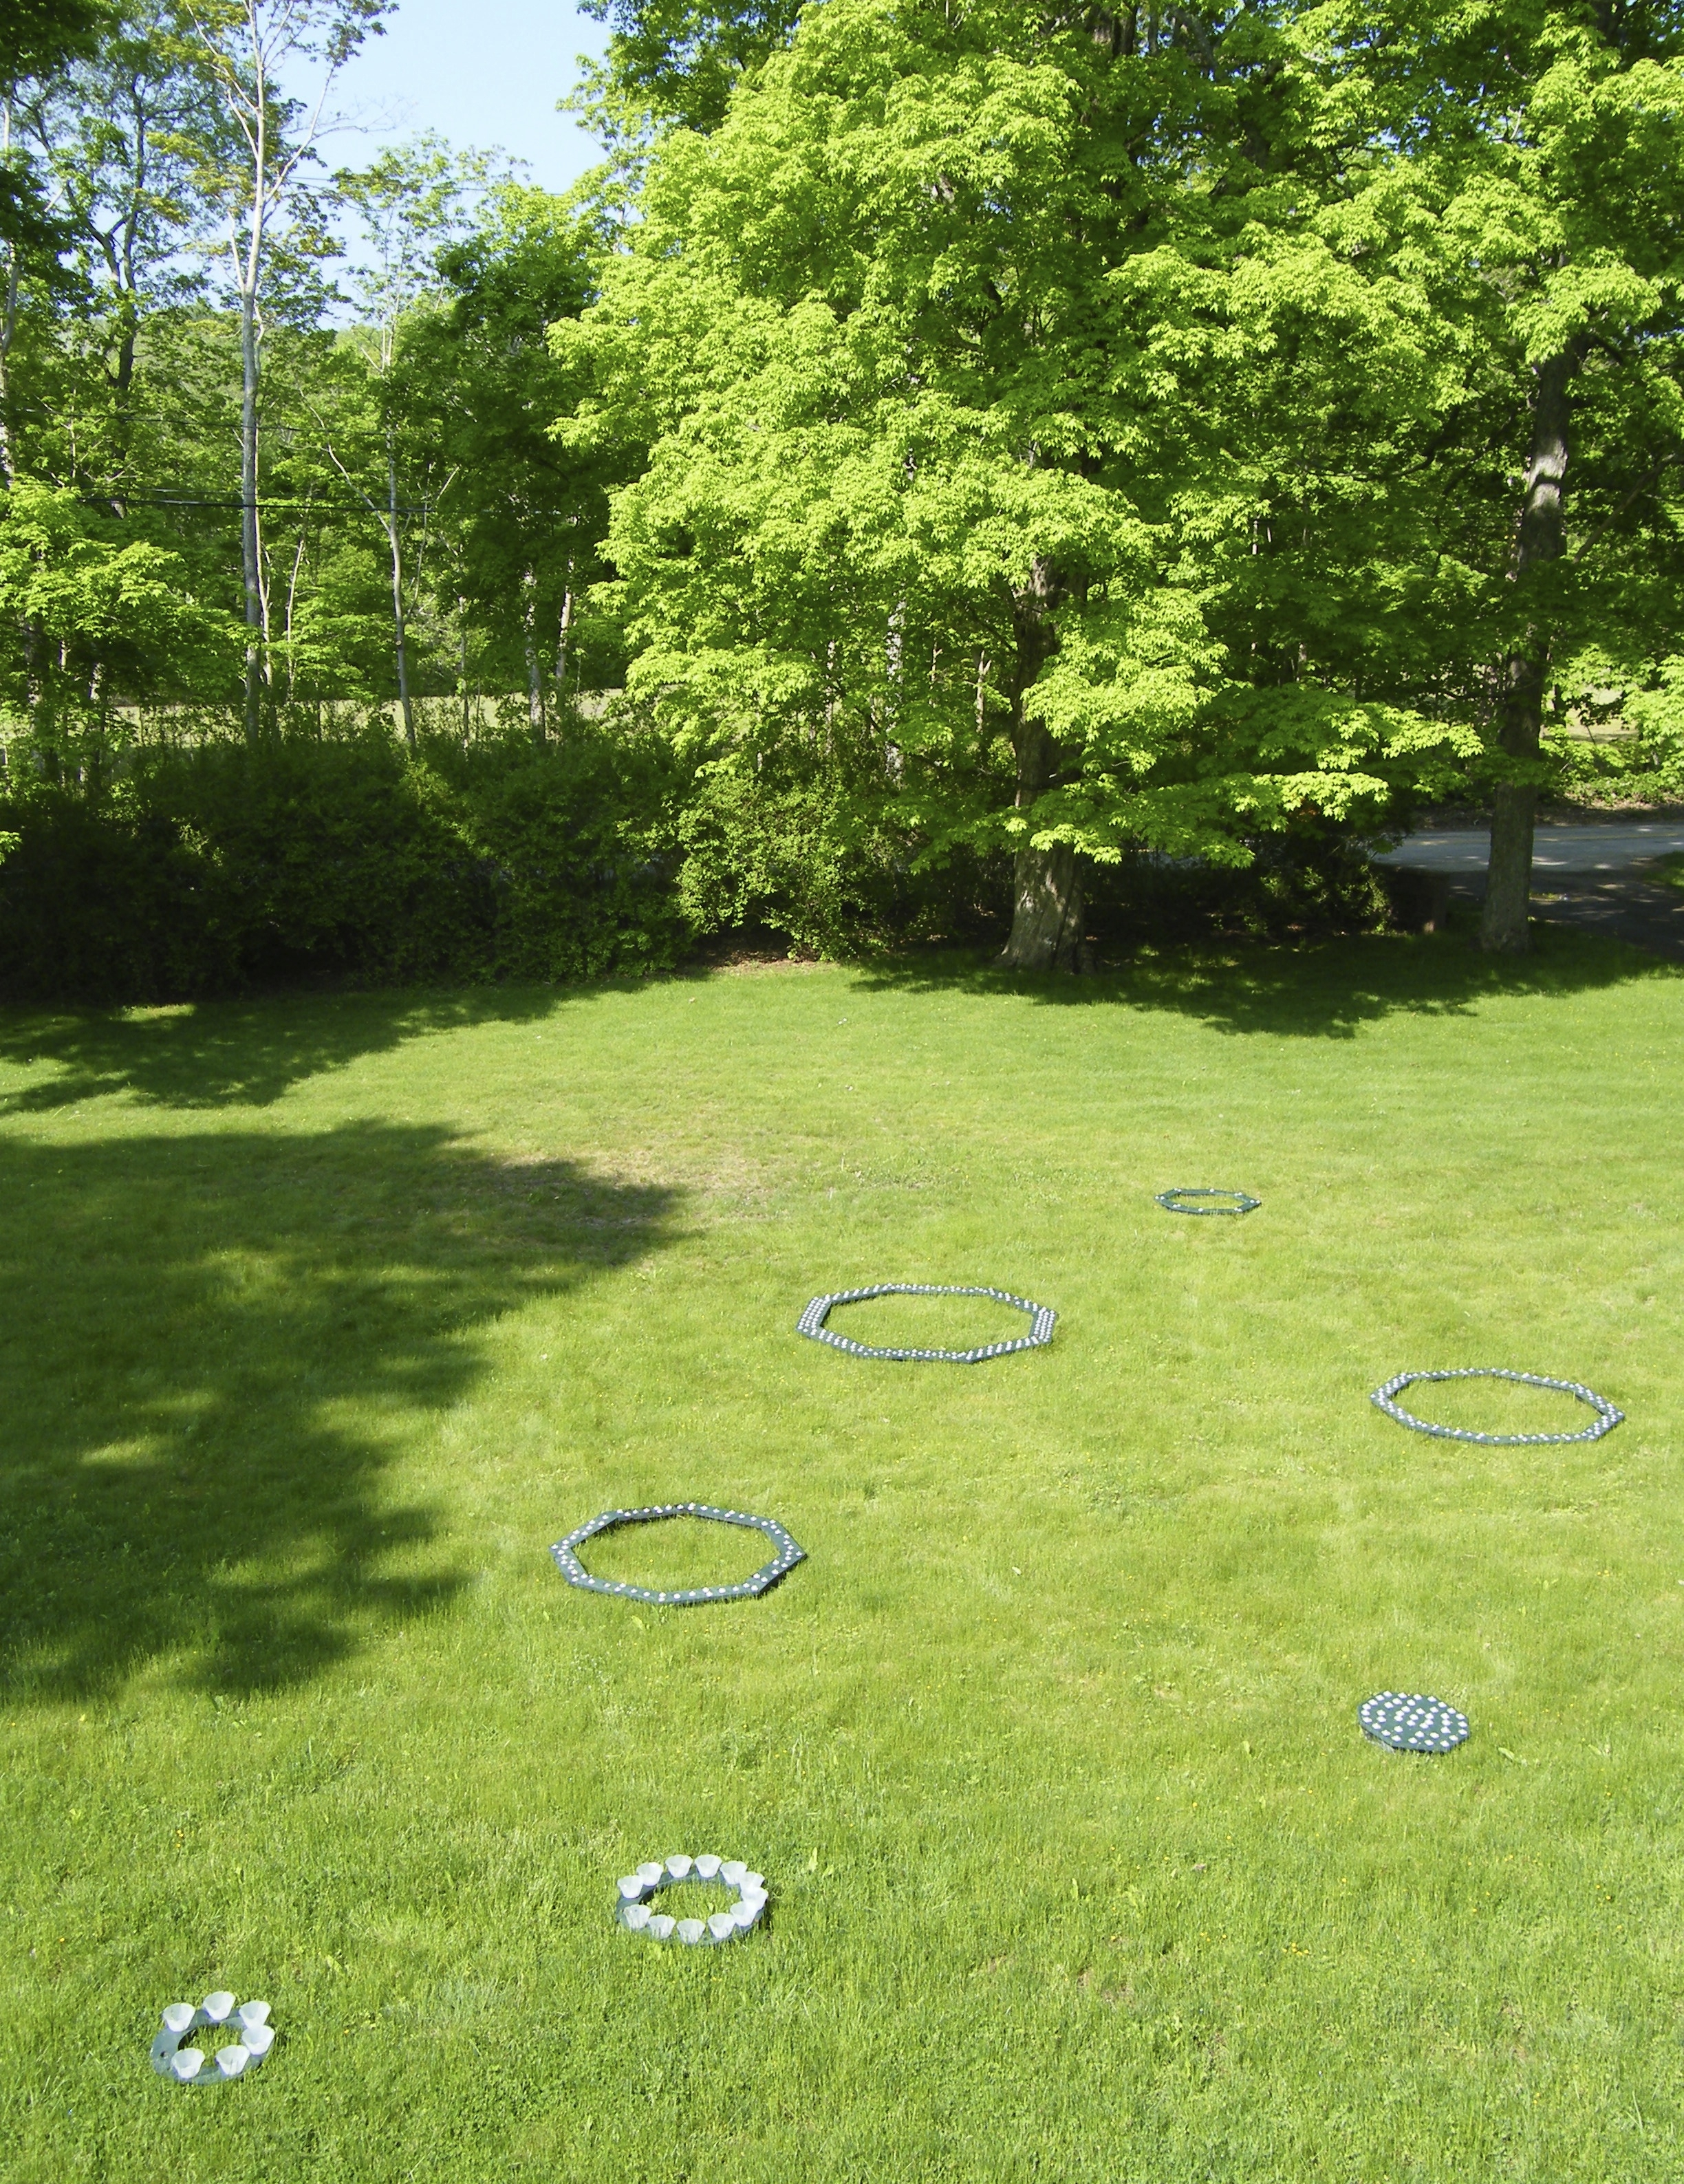 I constructed and installed these seven ephemeral  Floating Light Sculptures  during a May 2013 residency at I-Park Foundation in rural Connecticut. The residency allowed me to develop an idea dating to 1994, and to bring it to fruition.  The sculptures were octagons and circles, and they ranged in diameter from 9 inches to 5 ½ feet. They were best seen at night when their white glow was most intense. I was surprised that the forms maintained a quiet presence during the day. Equally unexpected was how the LED lights mimicked the moon's glow and color.  The floating sculptures appear in photographs as smaller, distant objects. Walking the trail around the pond led one quite close to where the light sculptures were installed, and the energy of the lights made size irrelevant.   Surrounded by forest, the sculptures floated in the pond's clear space, moving in concert with the wind. Nature subsumed these sculptures; once afloat, they belong more to the natural world than the man-made.   Materials: wood, screws and grommets, Styrofoam, paint, museum putty, and submersible LED lights lit by 48-hour batteries.    Many thanks to Lani Asuncion for the nighttime photos: #'s 6 – 10.